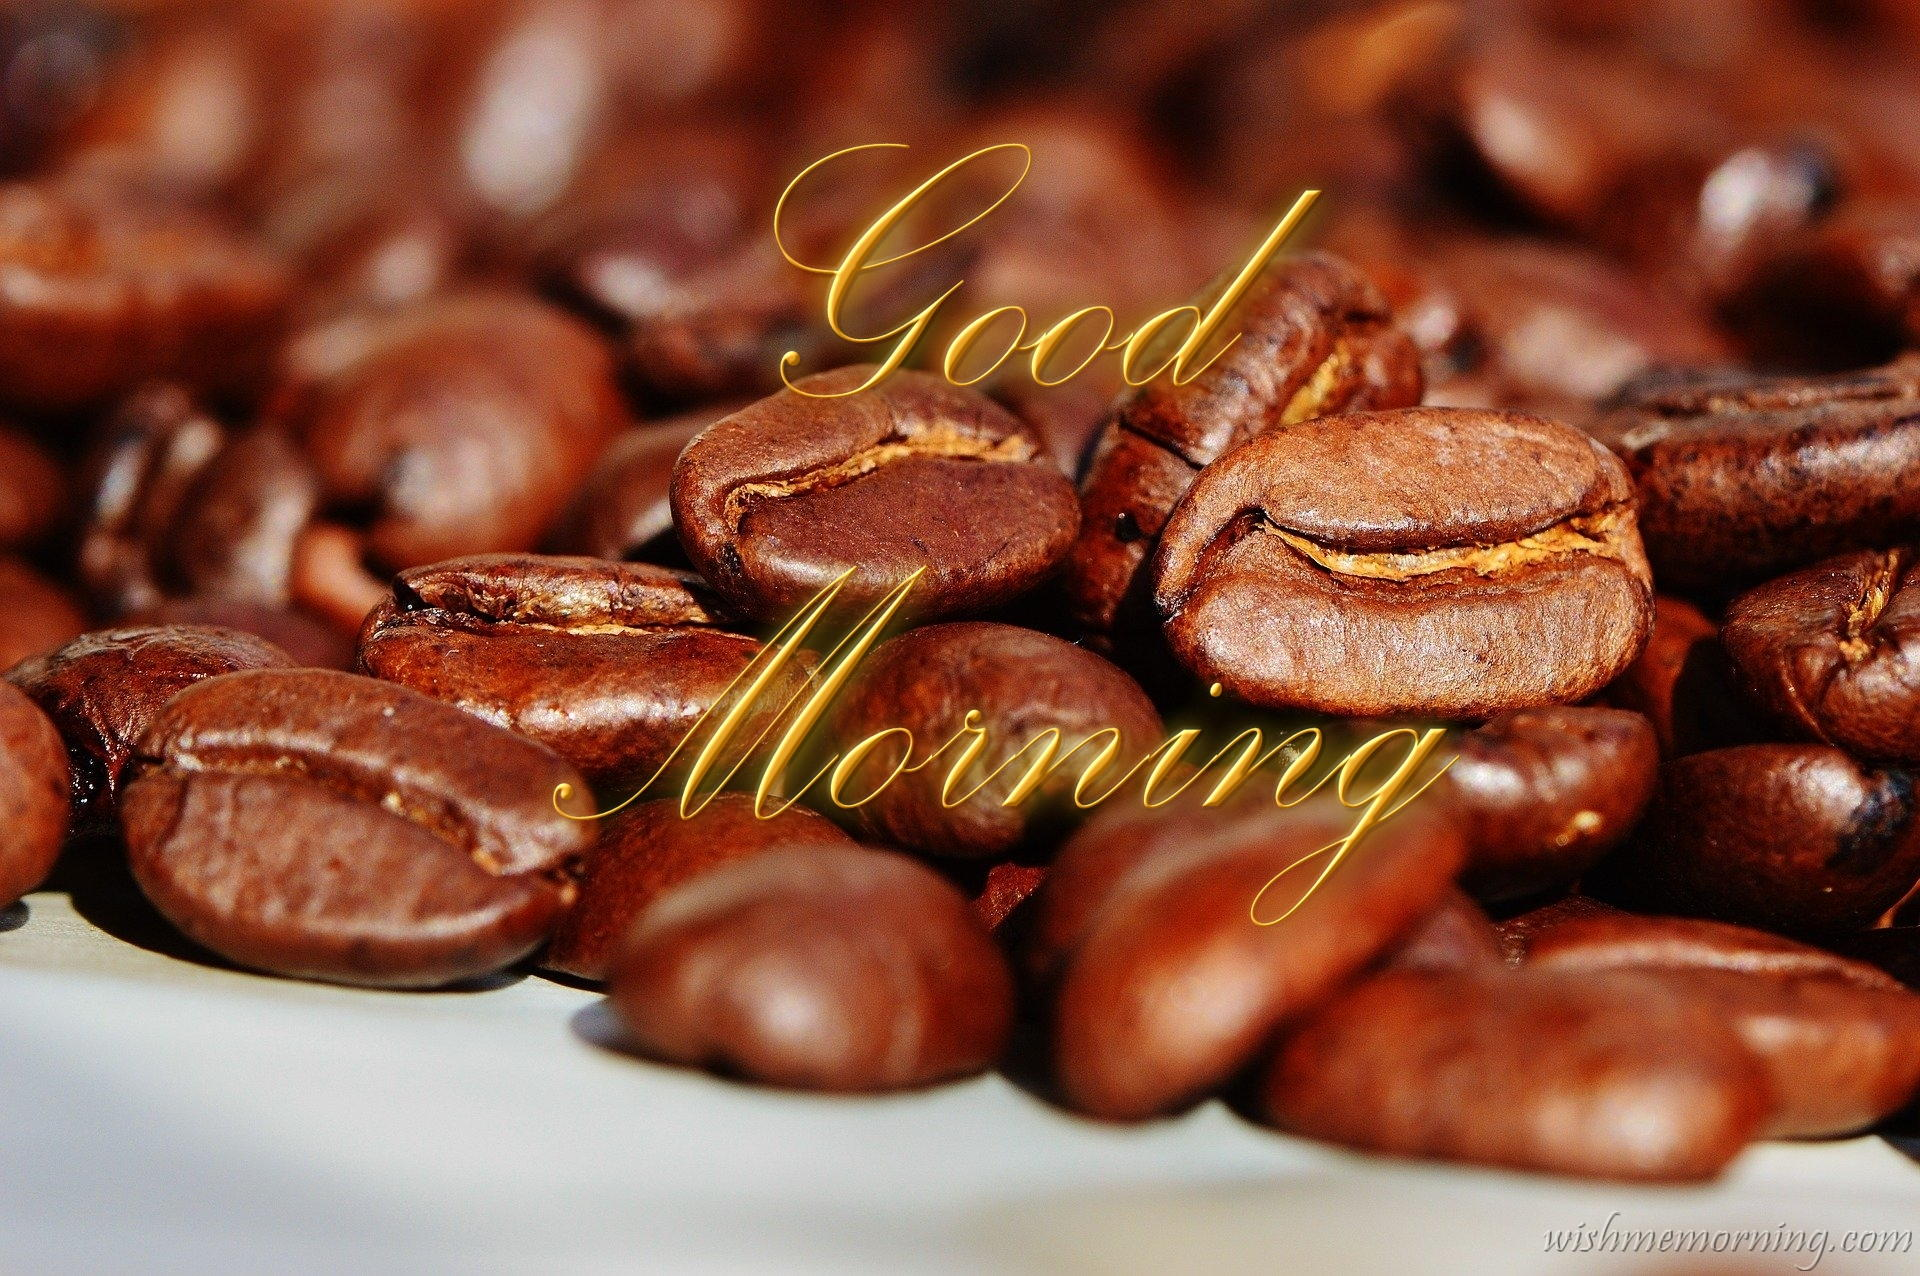 Golden Color Good Morning Text Zoomed Closeup Coffee Beans